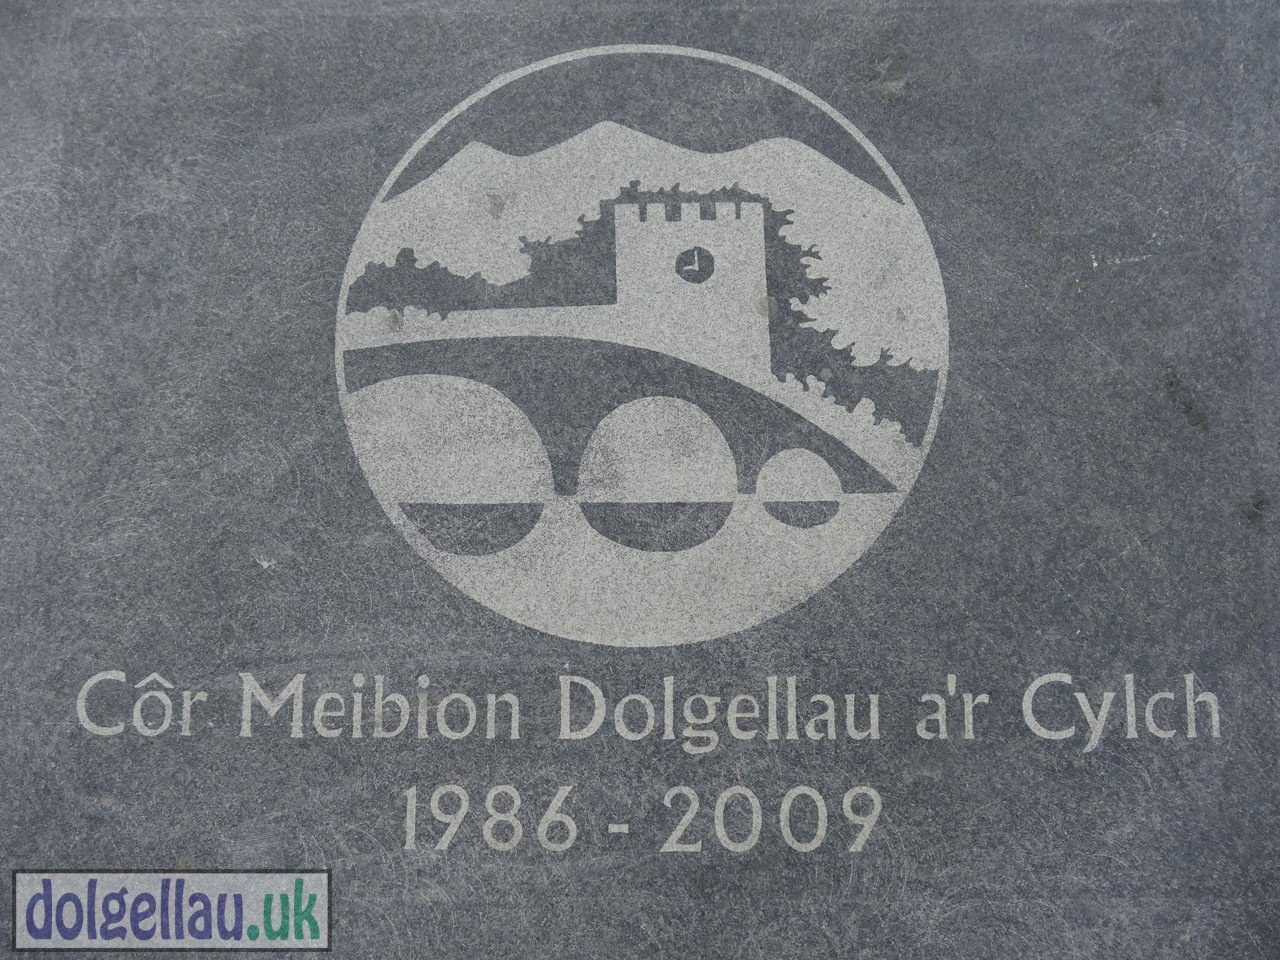 Cor-Meibion Logo Representing The Clock on St. Mary's is at Nine (the town's Curfew Hour in the Past).